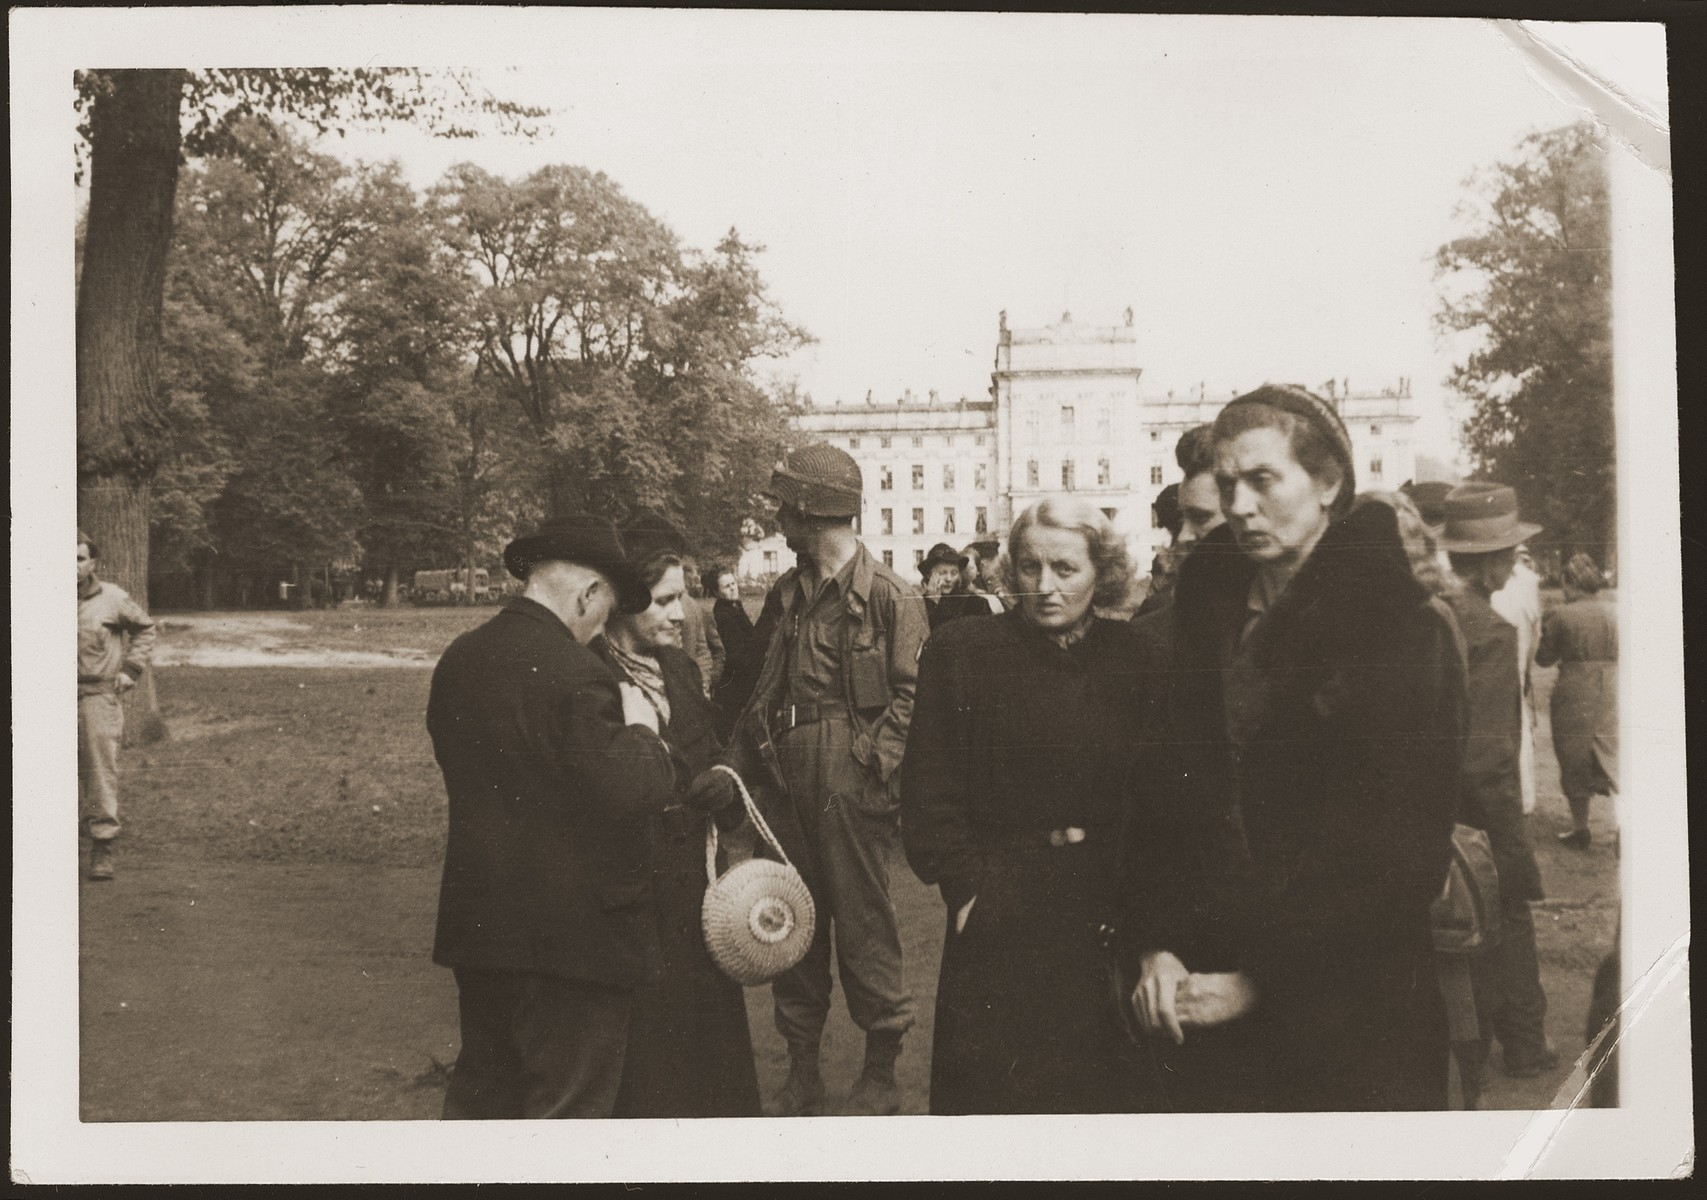 German civilians from Ludwigslust on the palace grounds of the Archduke of Mecklenburg, where they have been forced by U.S. troops to bury the bodies of prisoners killed in the Woebbelin concentration camp.